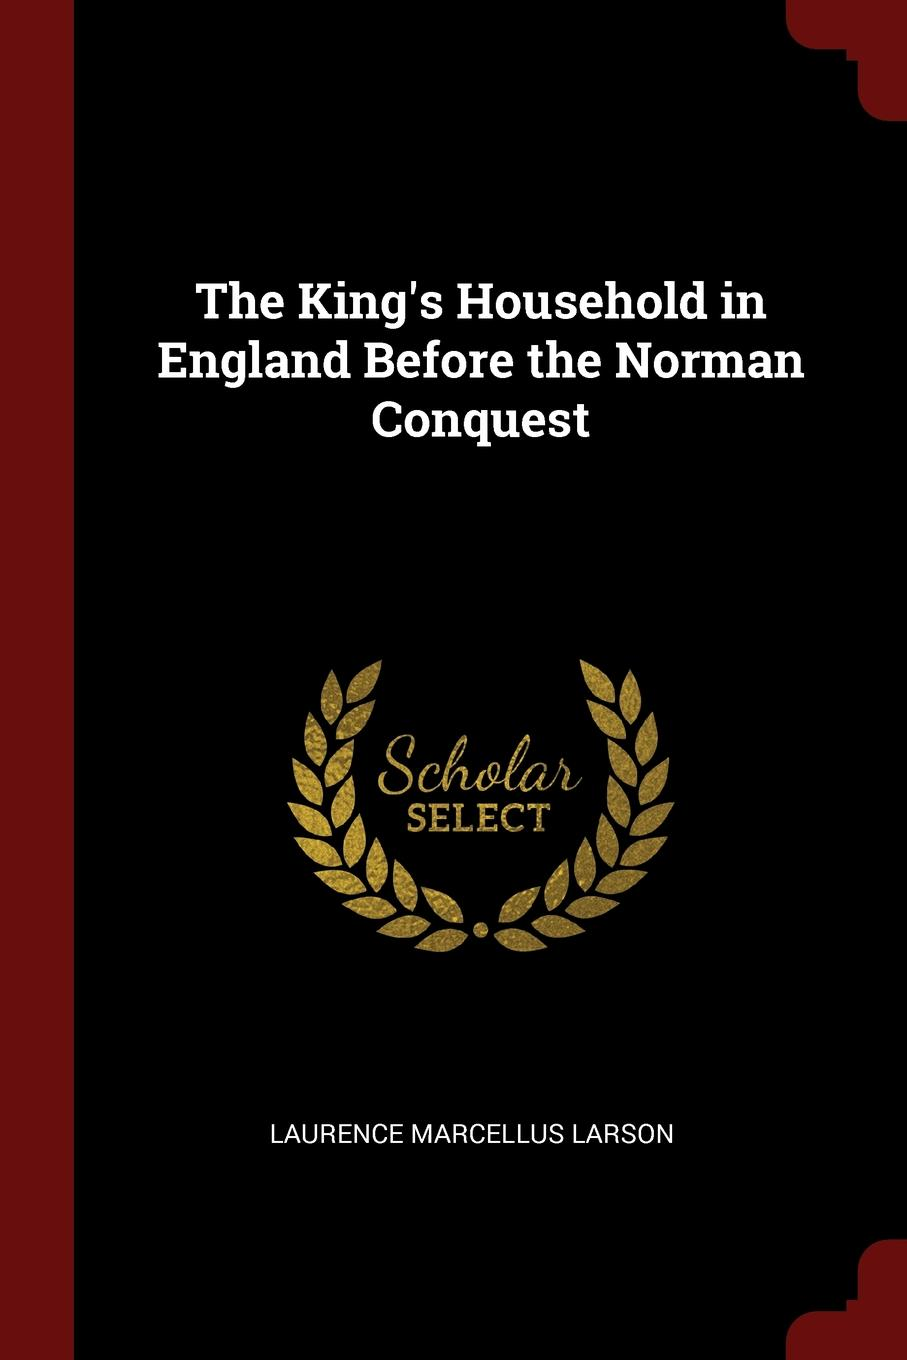 The King.s Household in England Before the Norman Conquest